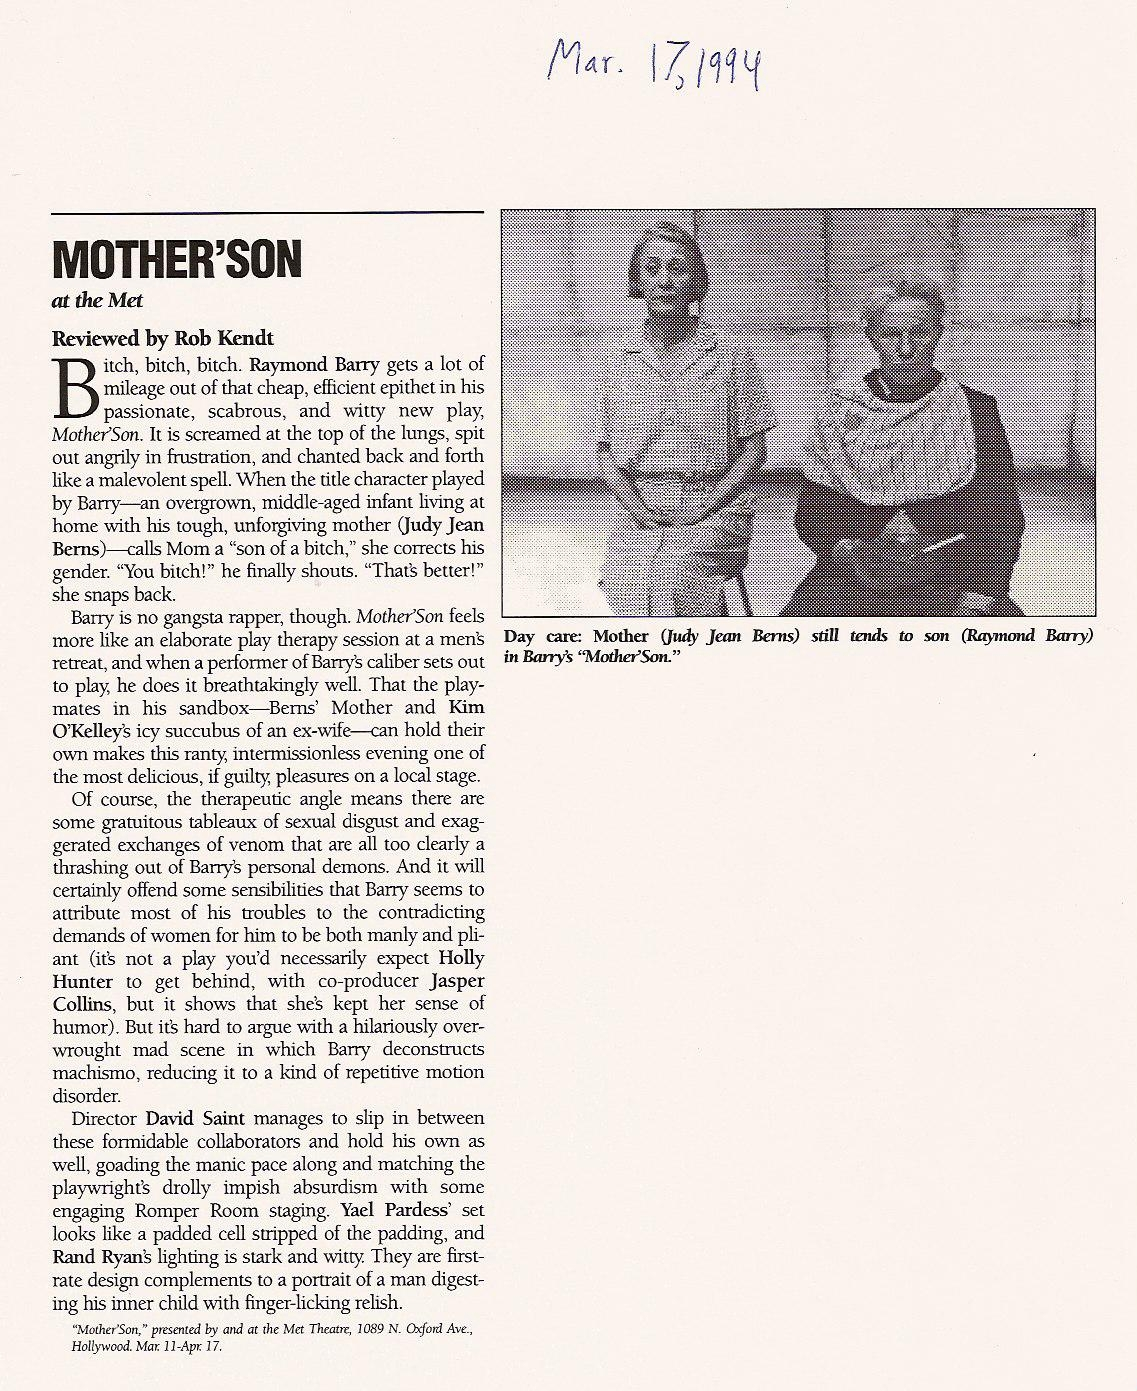 Mother'Son at the Met Theatre